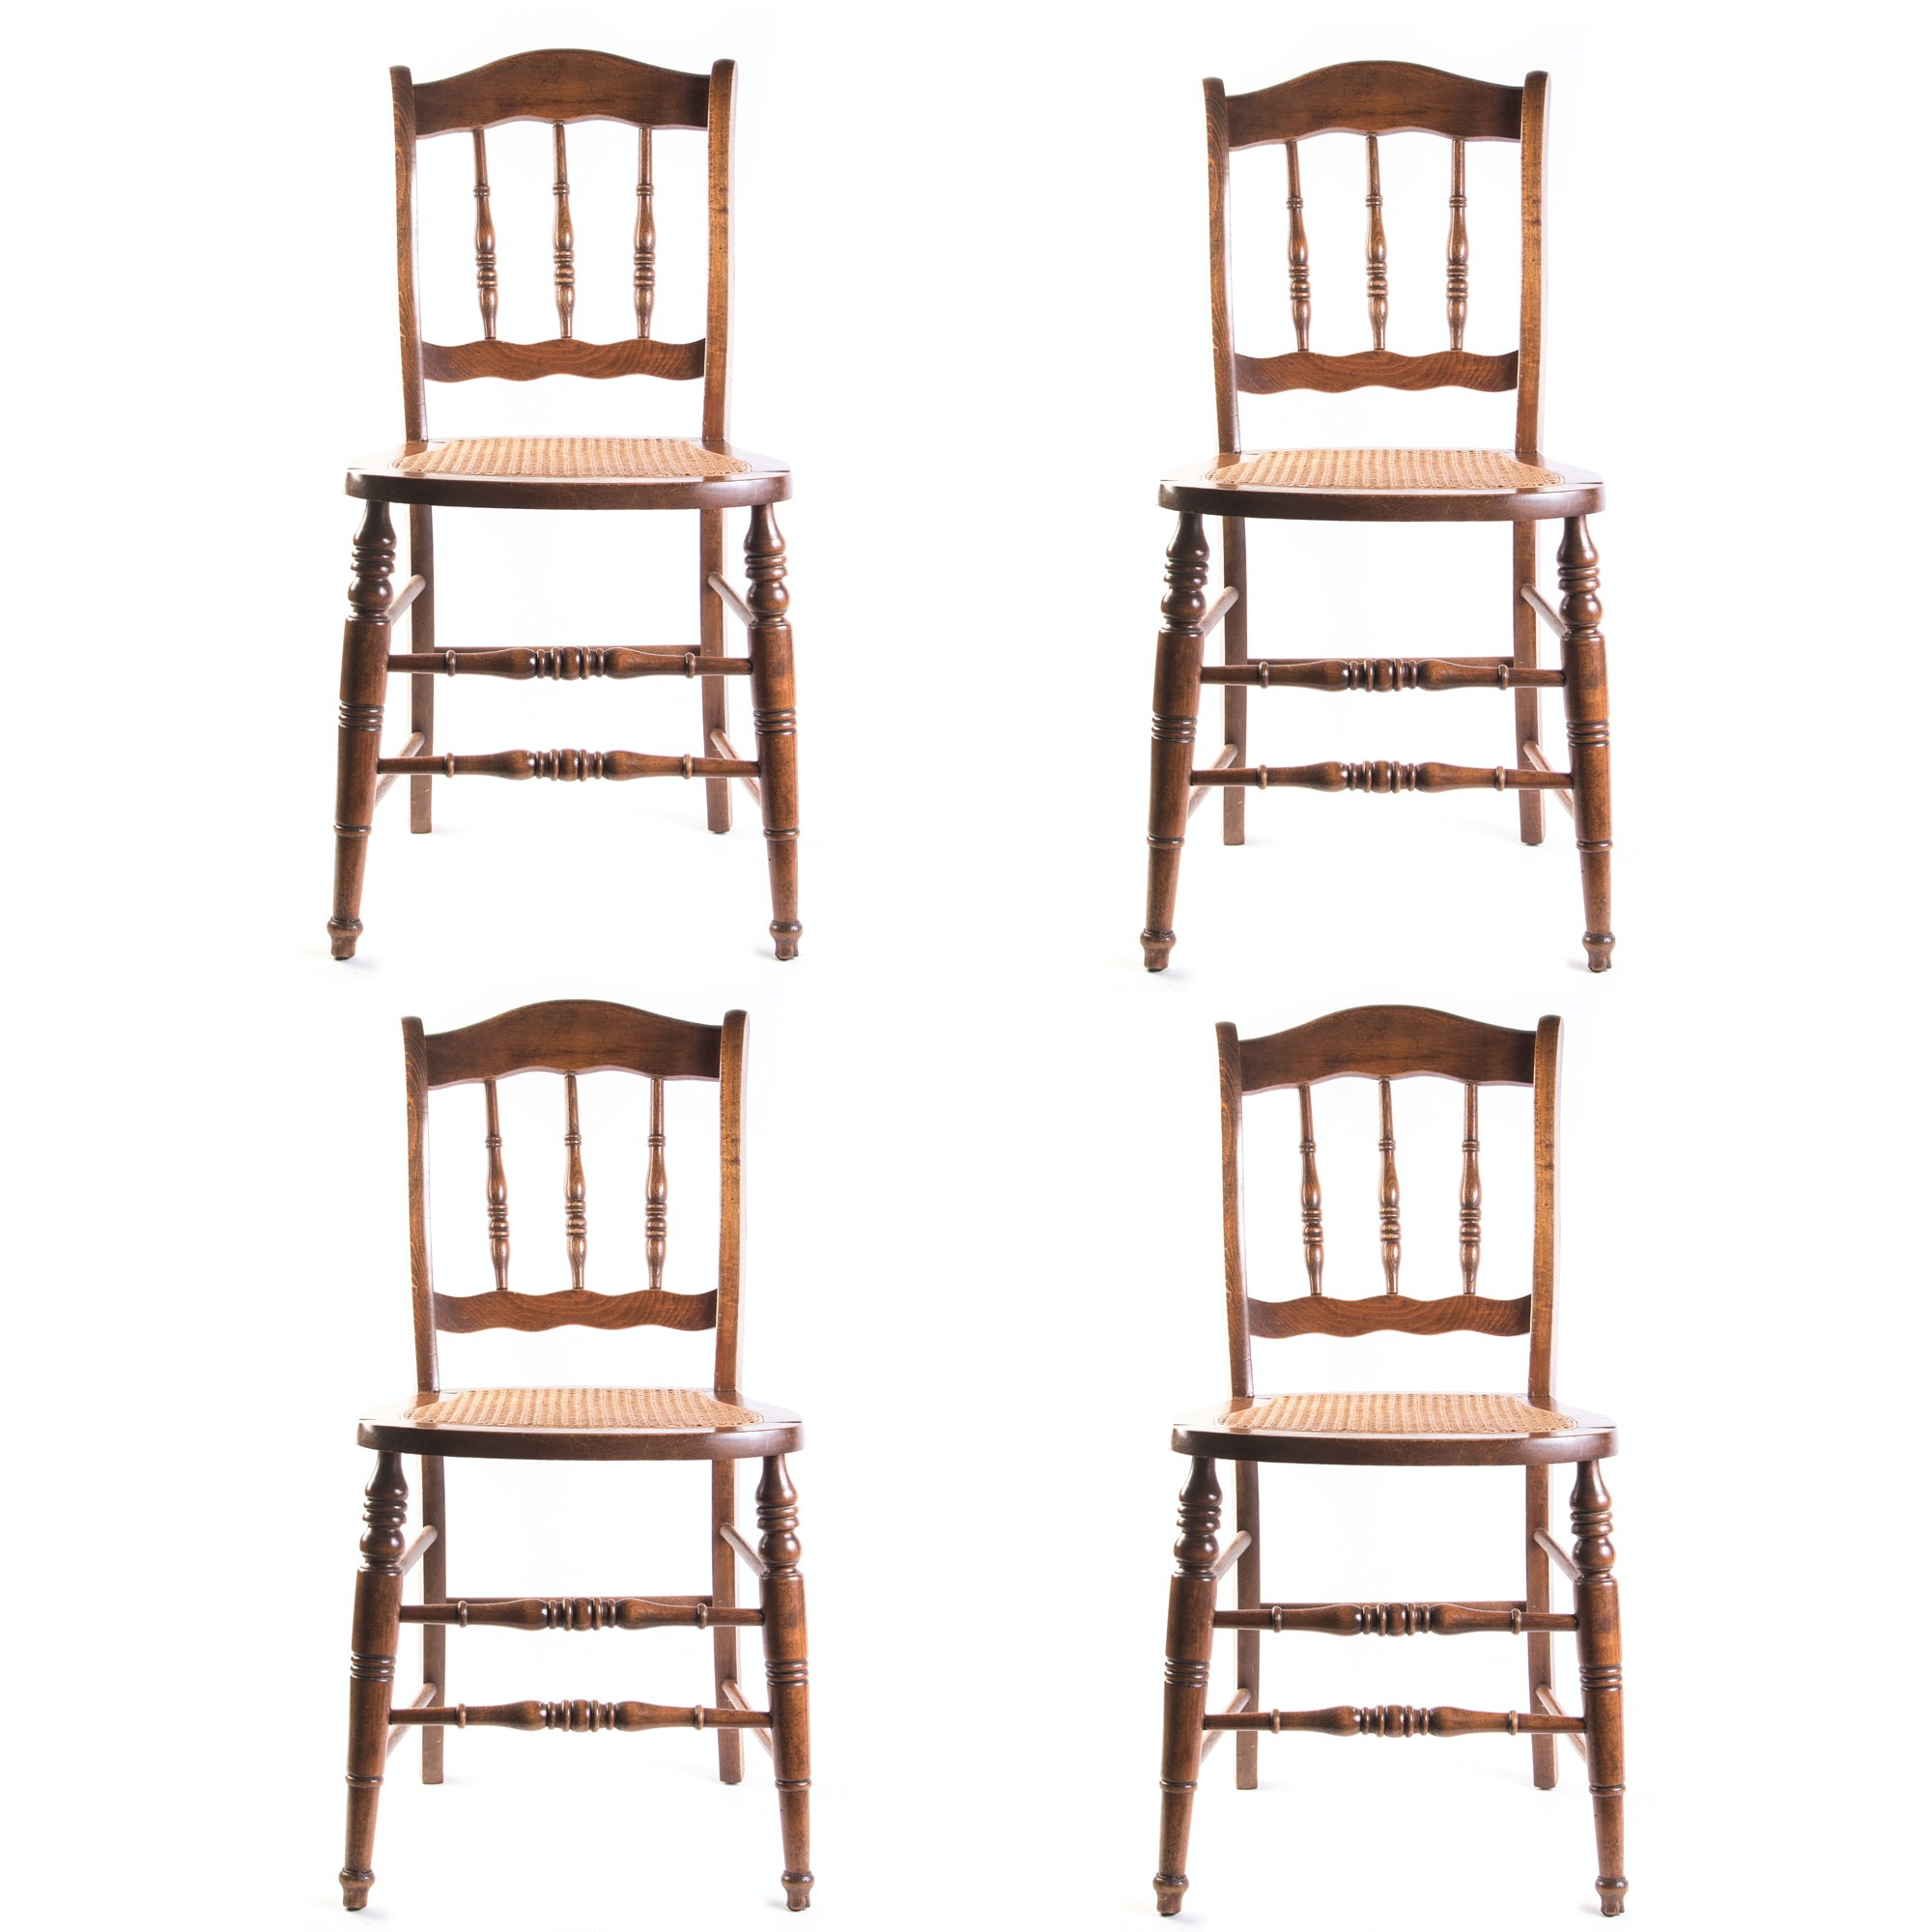 Vintage Chairs with Caned Seats